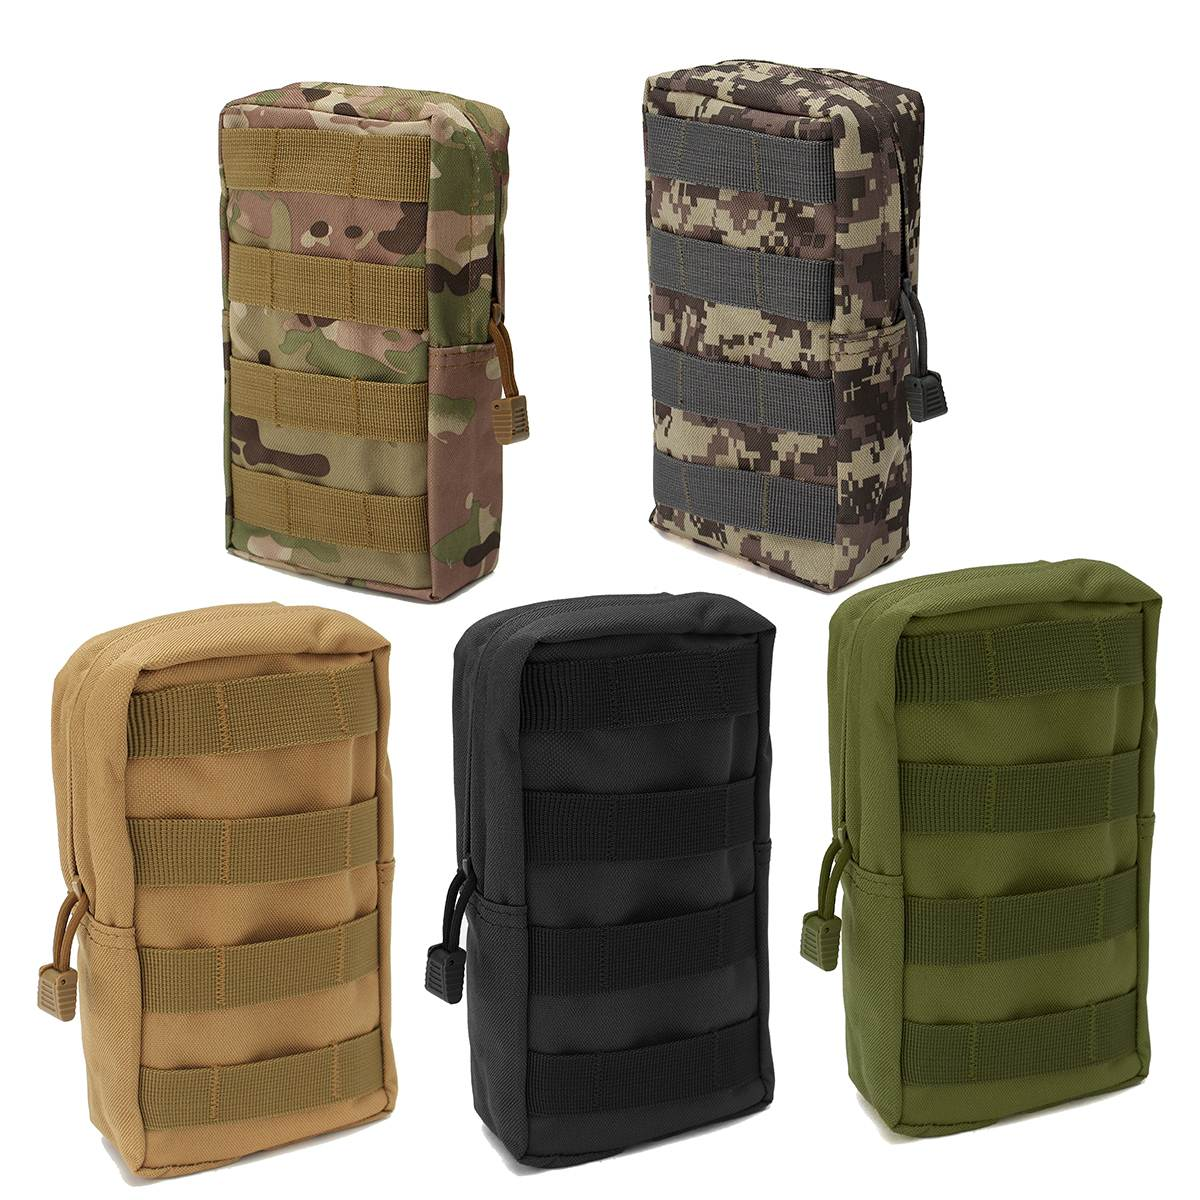 NEW Nylon Tactical Molle Waist Bag Medical First Aid Utility Emergency Pouch Outdoor Storage Bag Emergency Kits tactical 1000d molle utility edc magazine bag waist bag dump drop pouch men outdoor sports medical first aid pouch